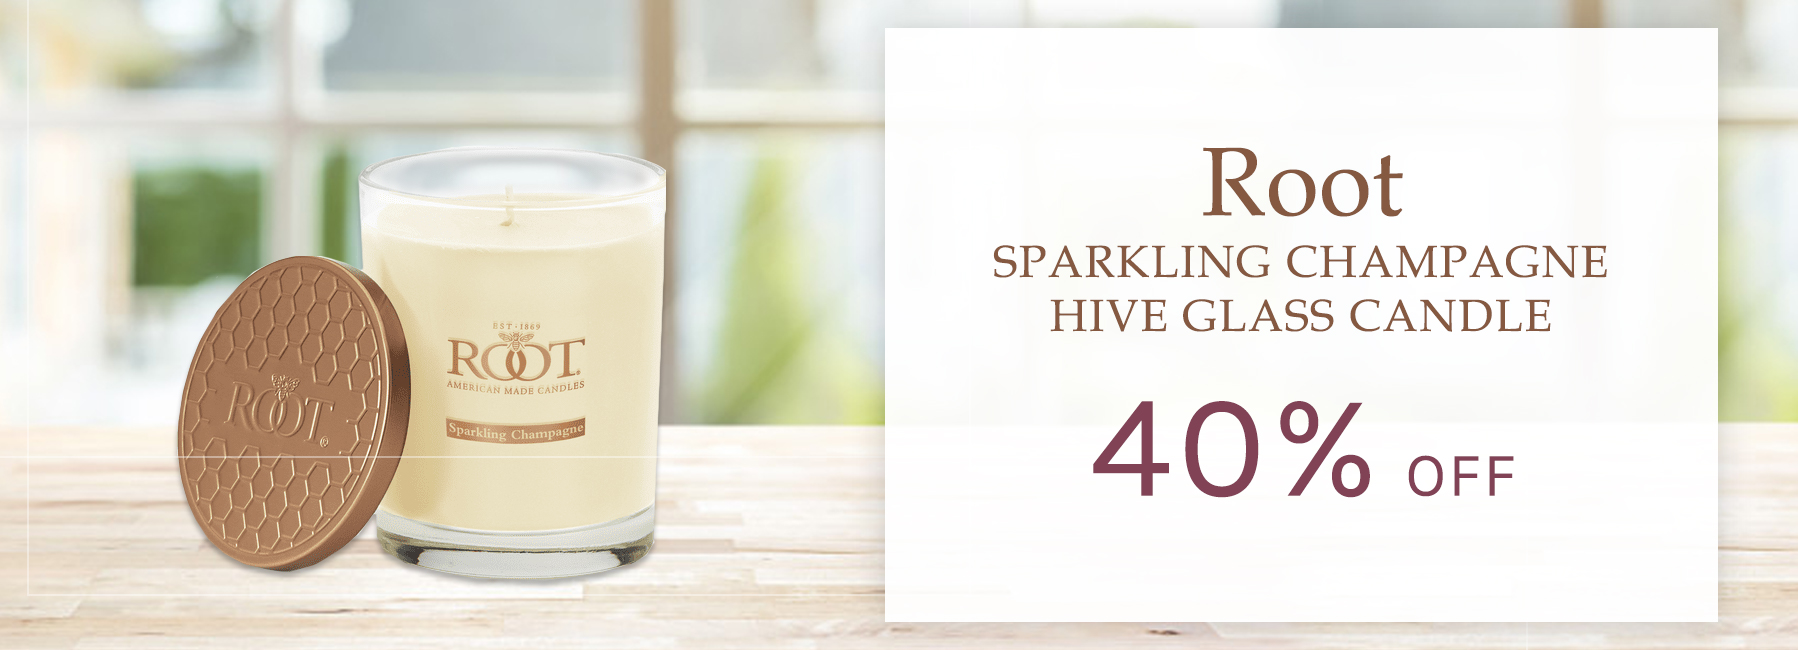 Root - Sparkling Champagne Hive Glass Candle - 40 Percent OFF